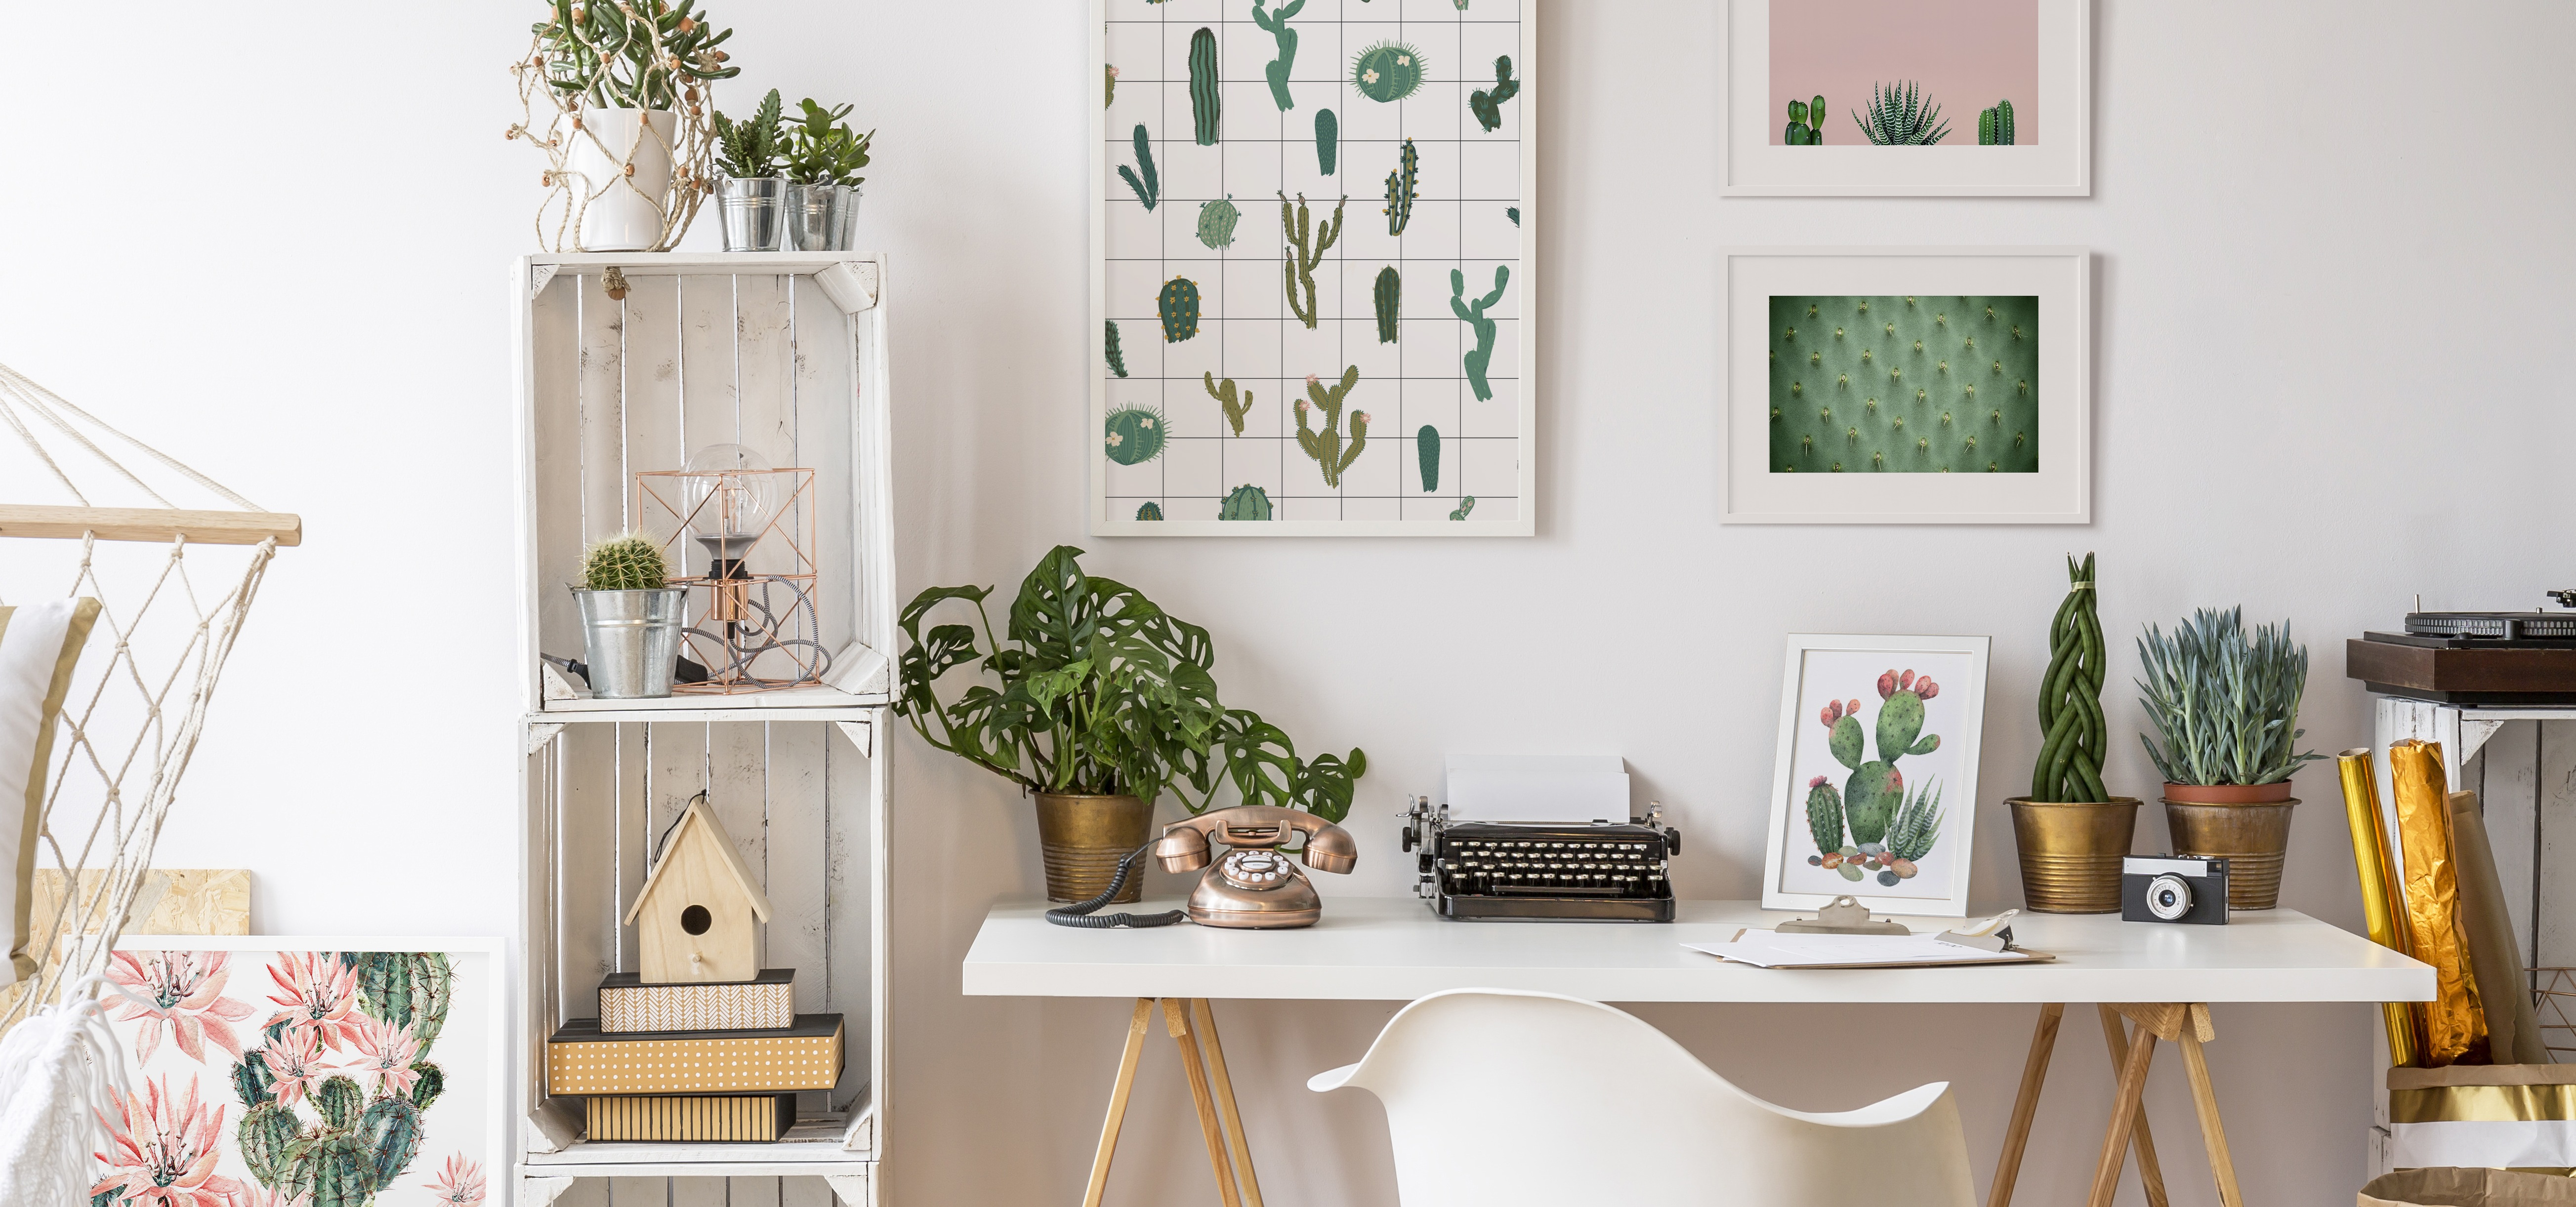 Interior trends 2019: inspirations straight from Pinterest